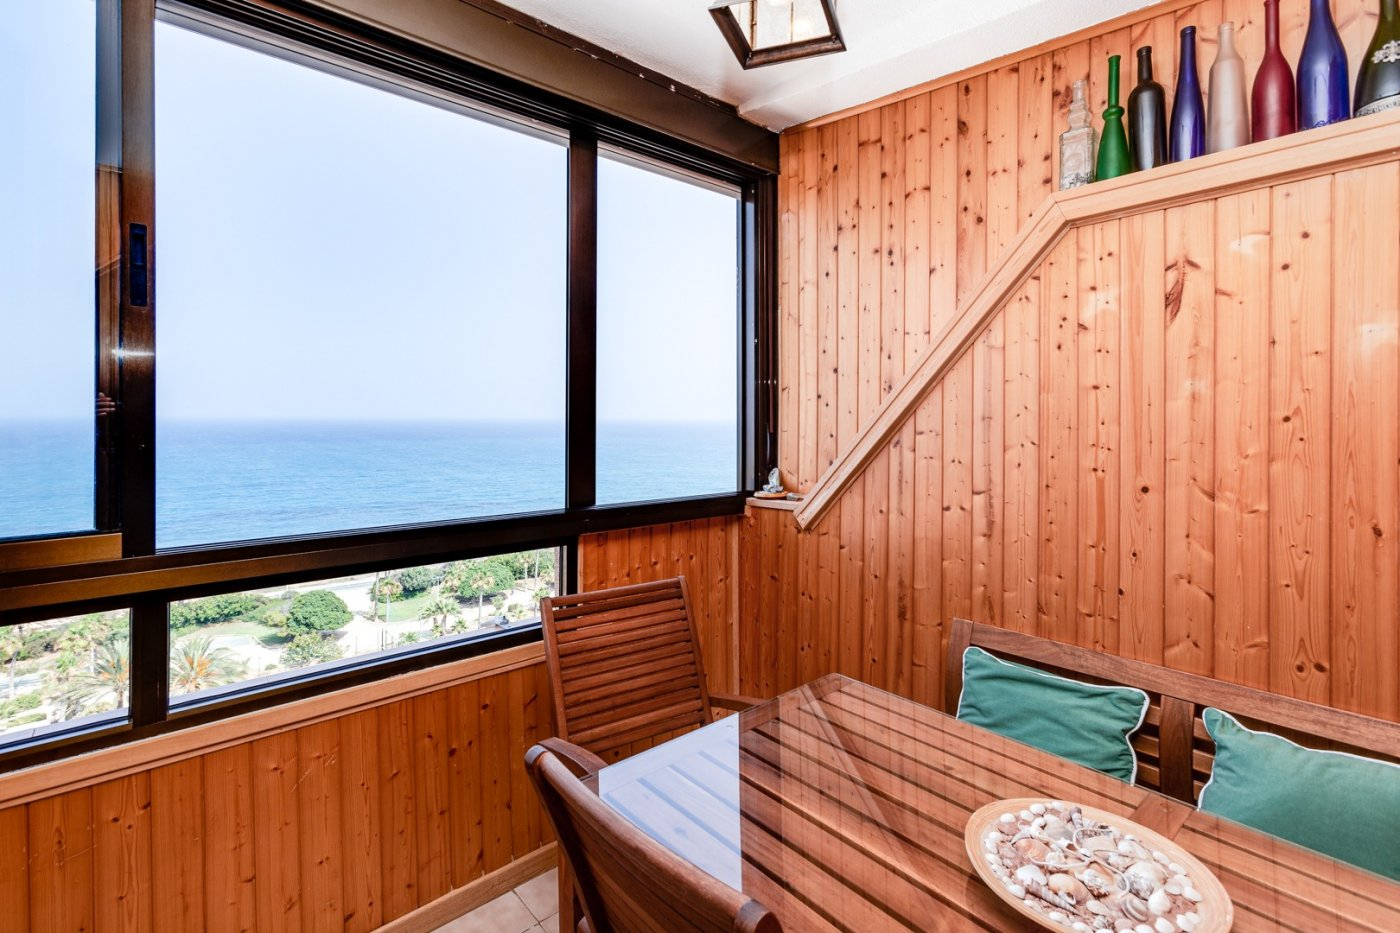 Cozy 2 bedroom apartment with unobstructed sea view for sale in Cabo Cervera